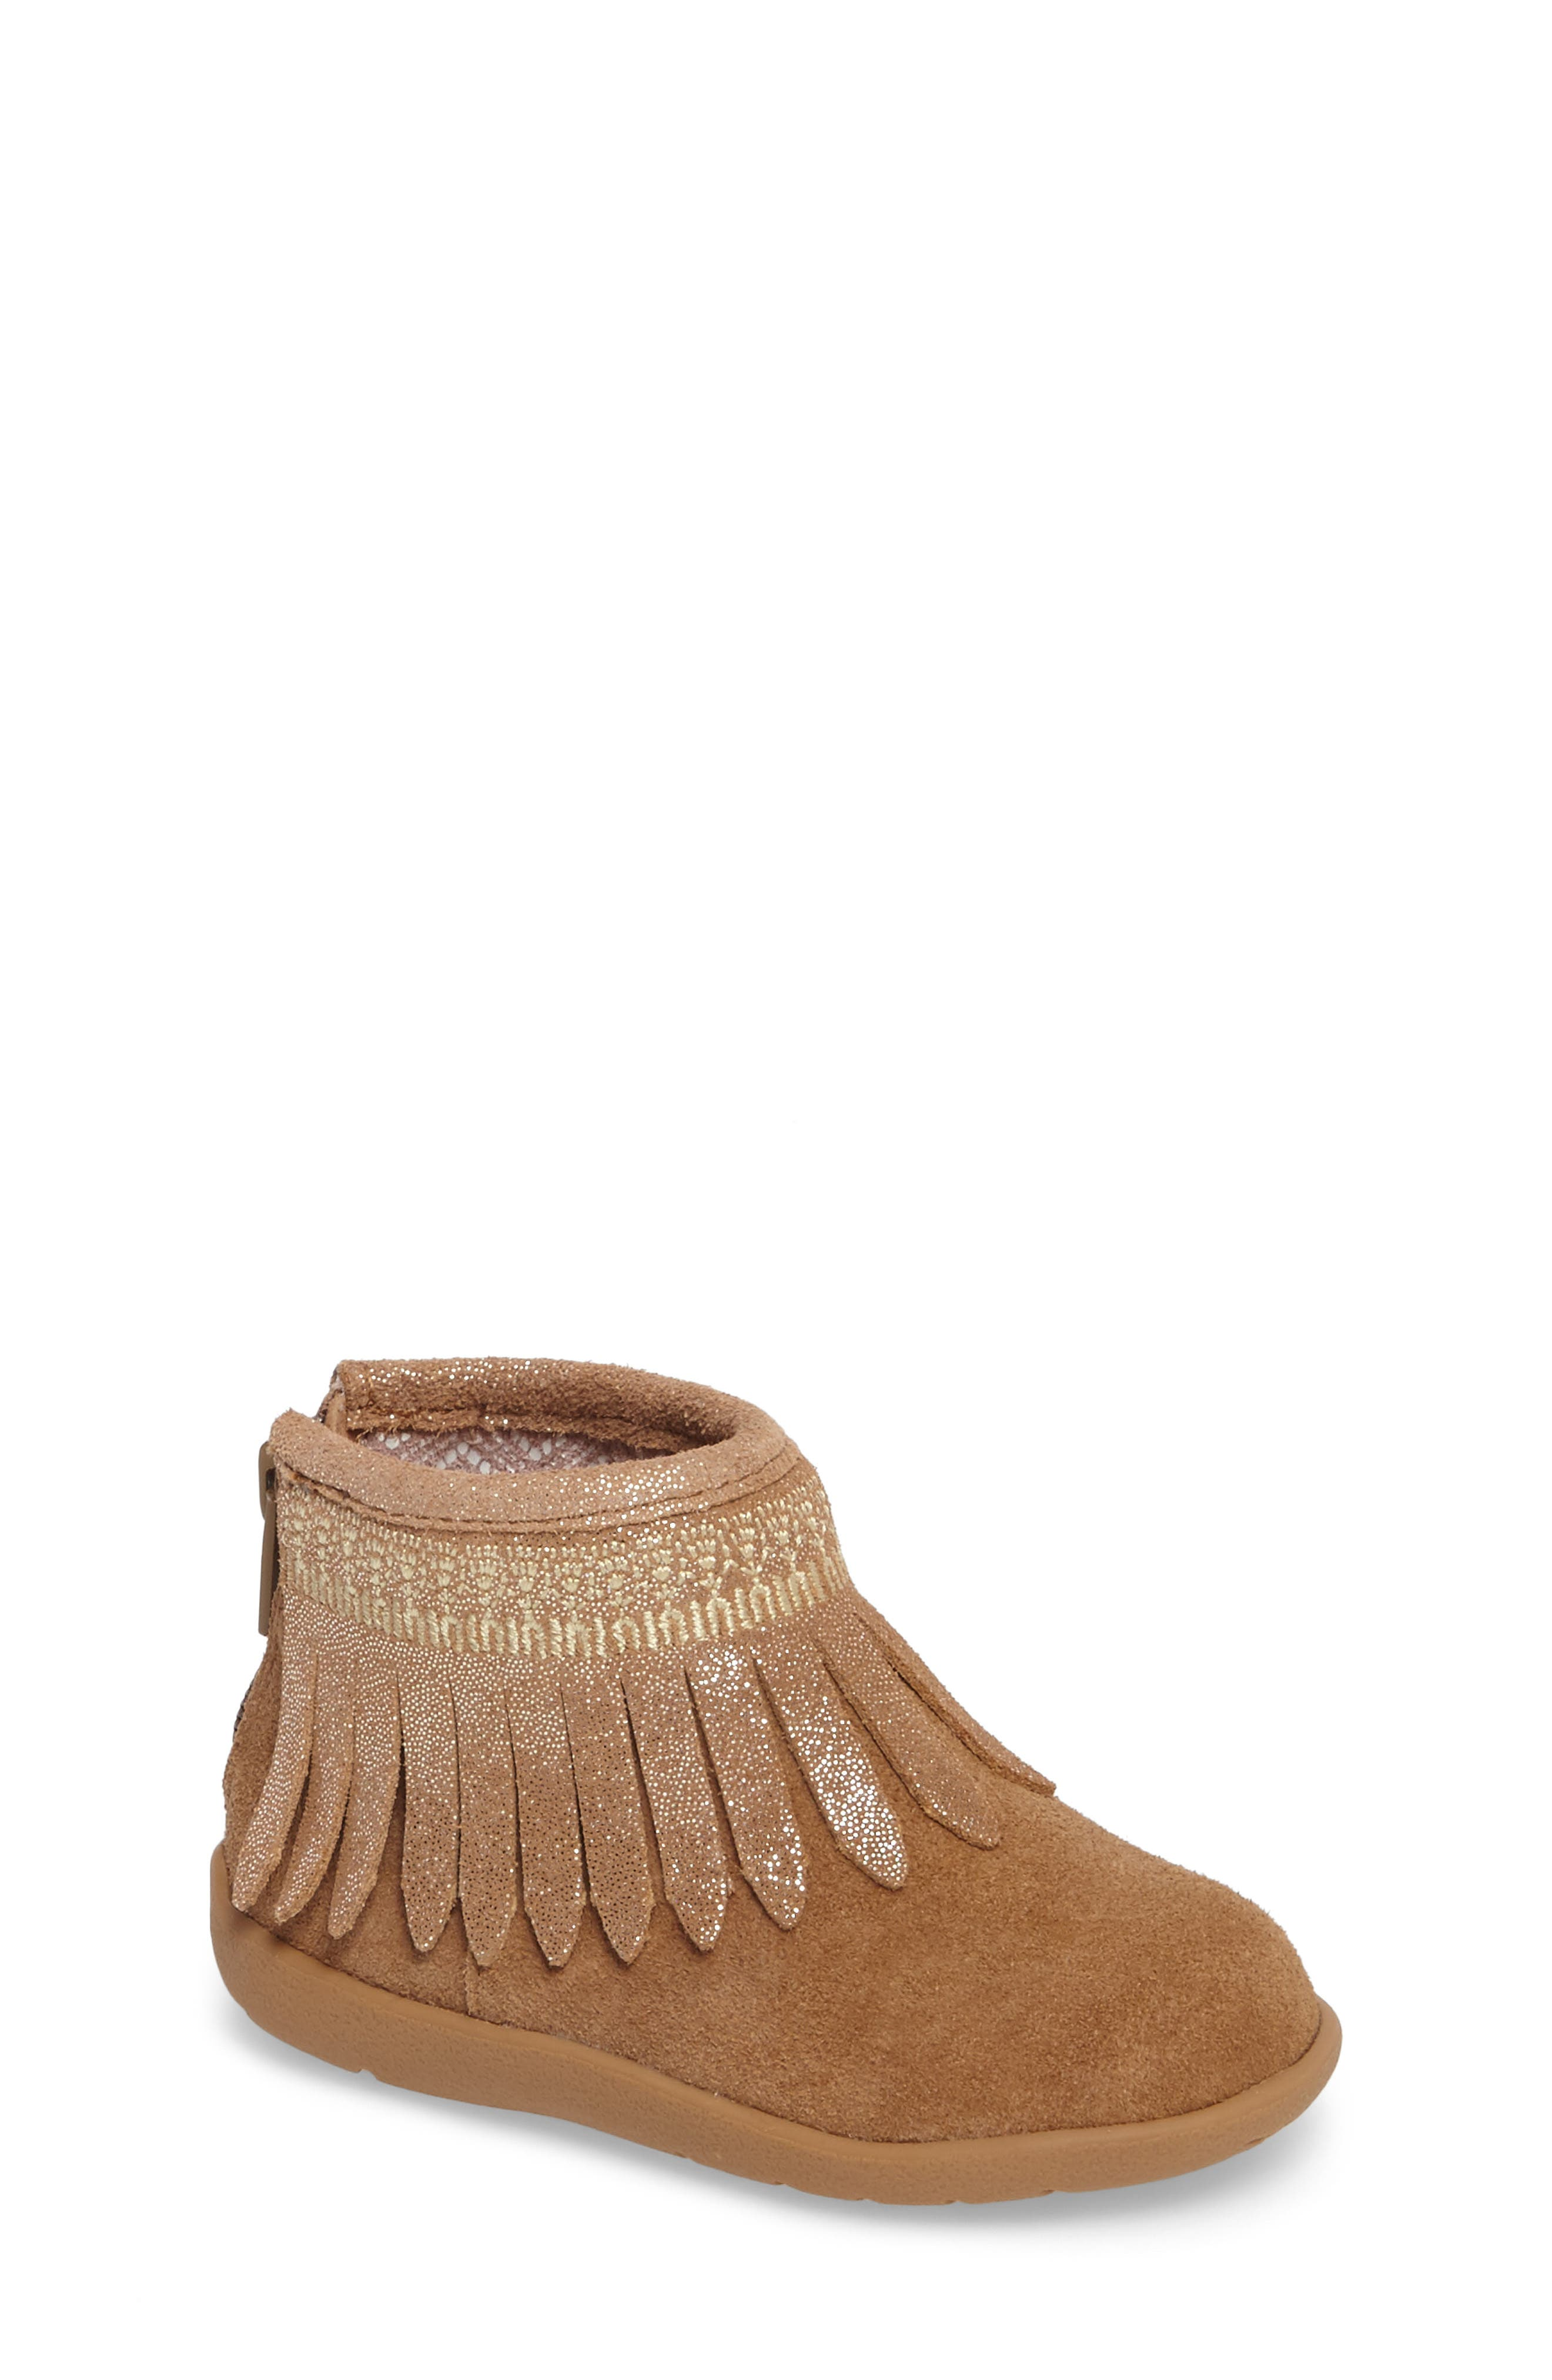 Main Image - Tucker + Tate Gracia Sparkle Fringe Bootie (Baby, Walker & Toddler)